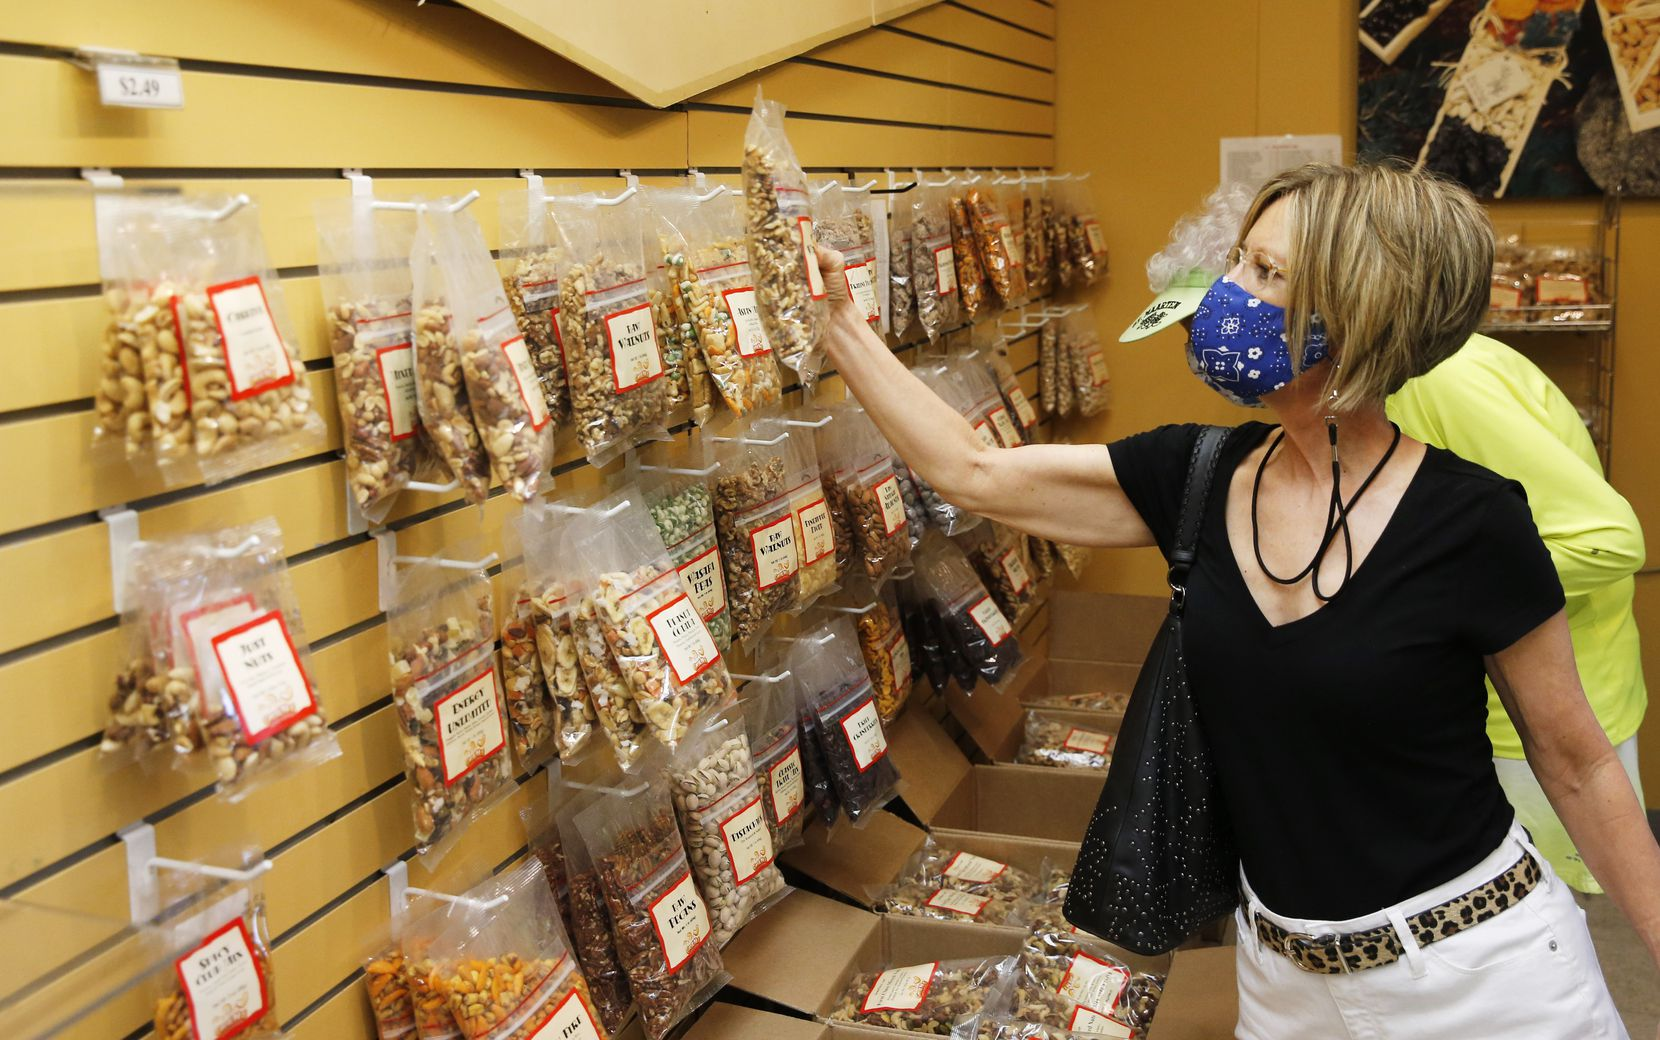 Meredith Clanton of Waxahachie grabbed a bag of walnuts while shopping with family at GNS Foods in Arlington on Tuesday.